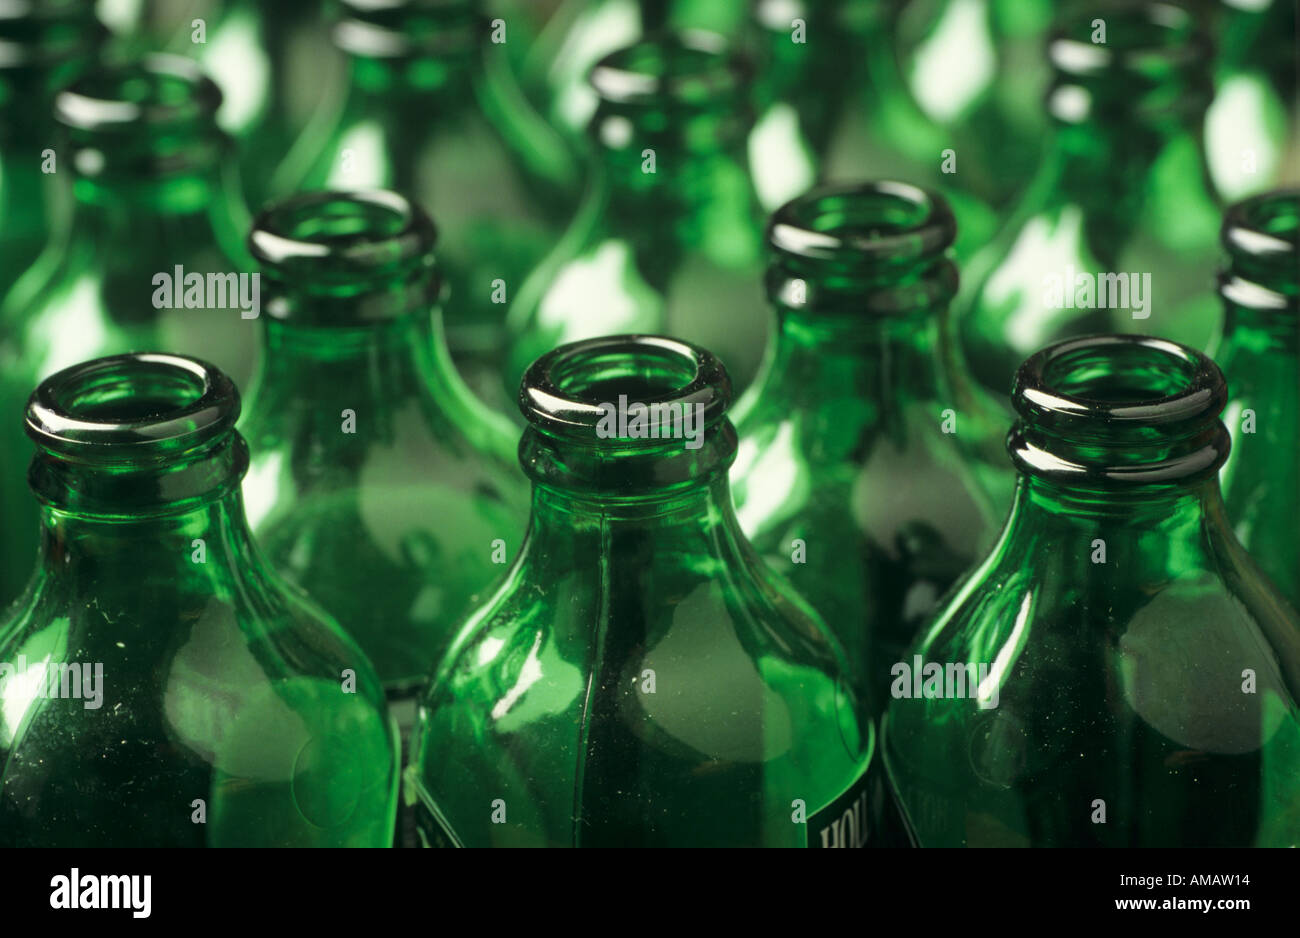 Green empty bottles waiting to be recycled - Stock Image